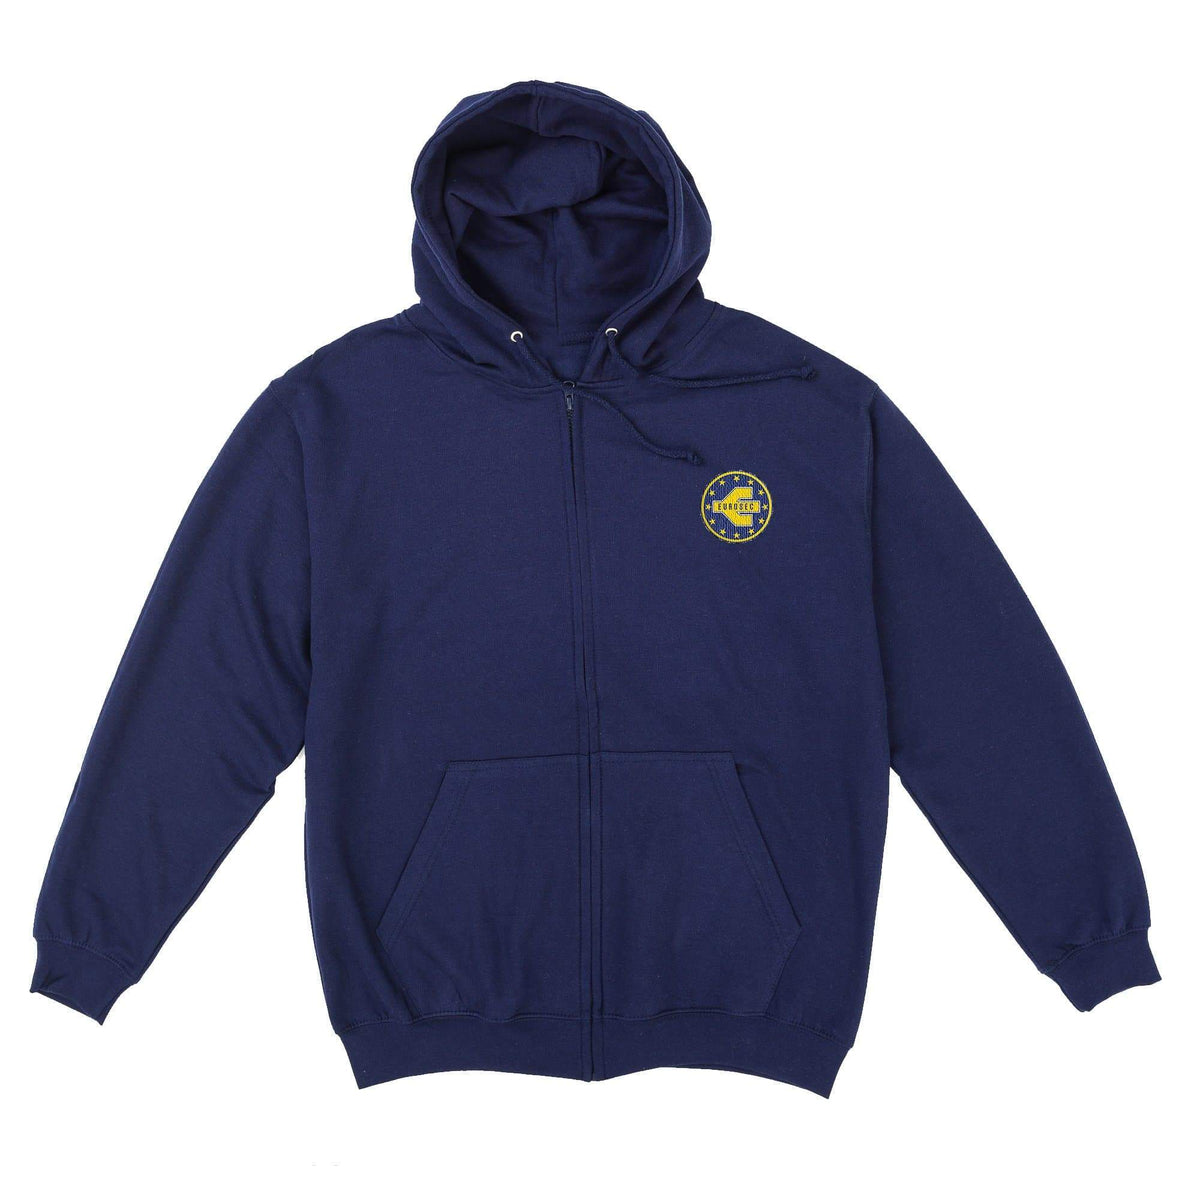 Eurosec Logo Men's Zipped Hoodie with Embroidery - The Gerry Anderson Store